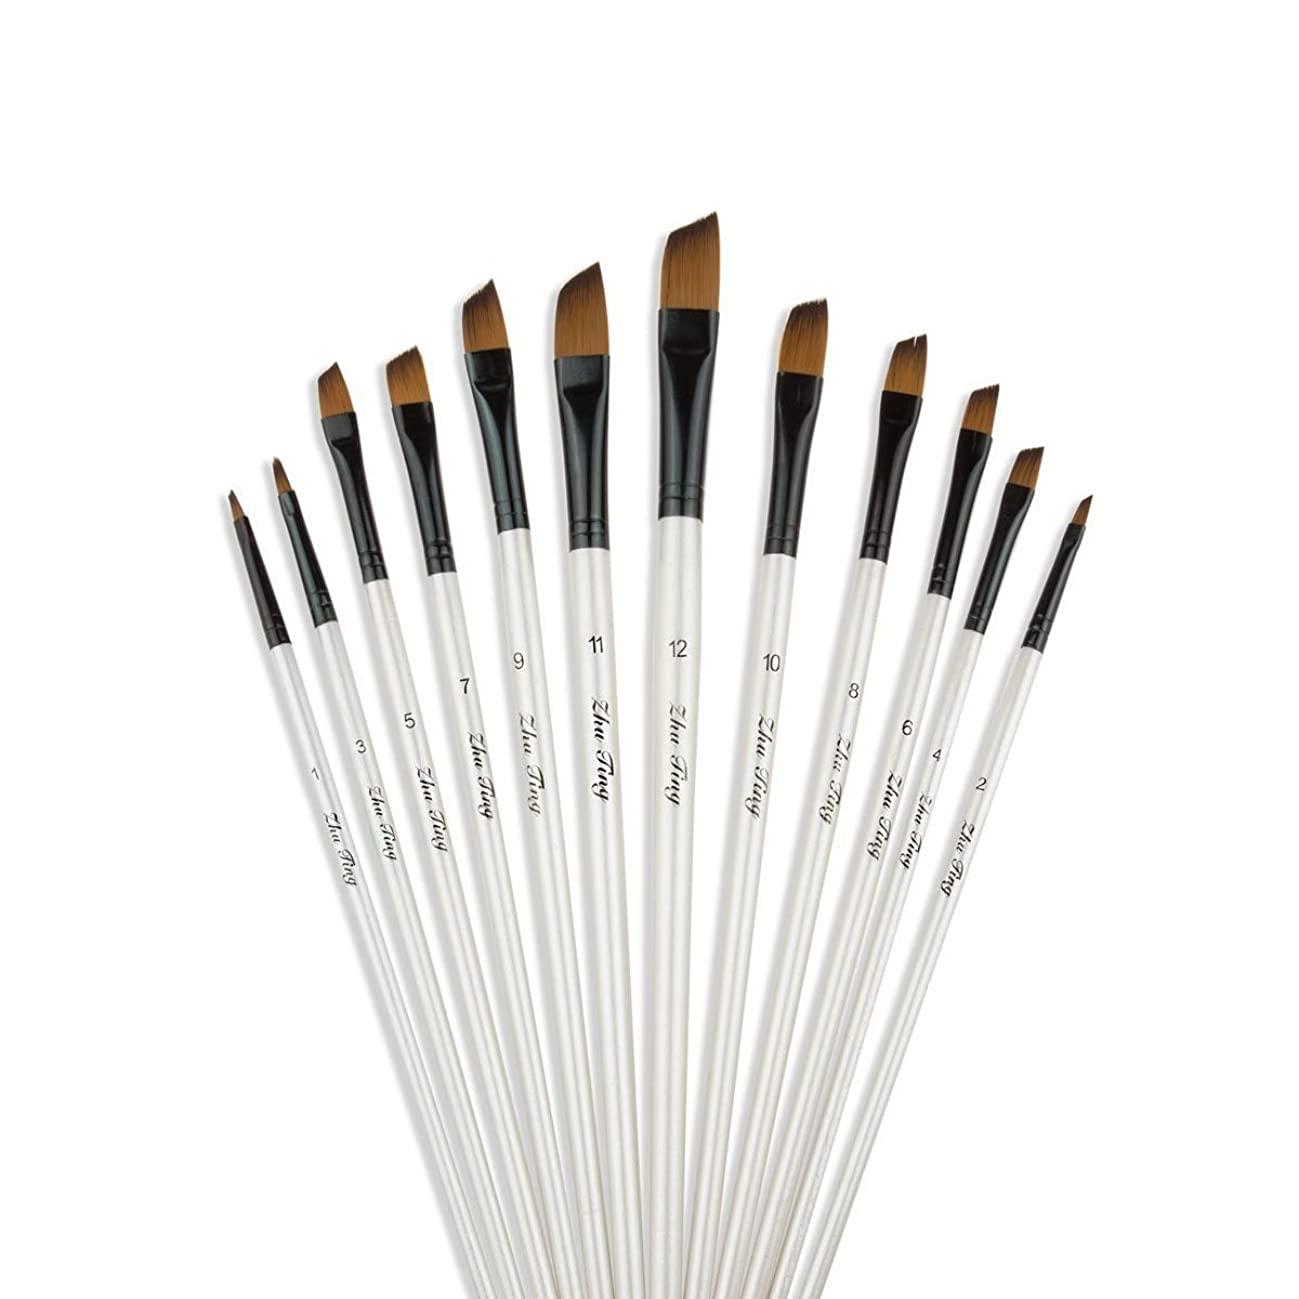 YXQSED-Paint Brush Set Quality Artist Paint Brushes Artist Brushes for Acrylic Oil Watercolor Gouache Face Painting Skewed Peak Paintbrus